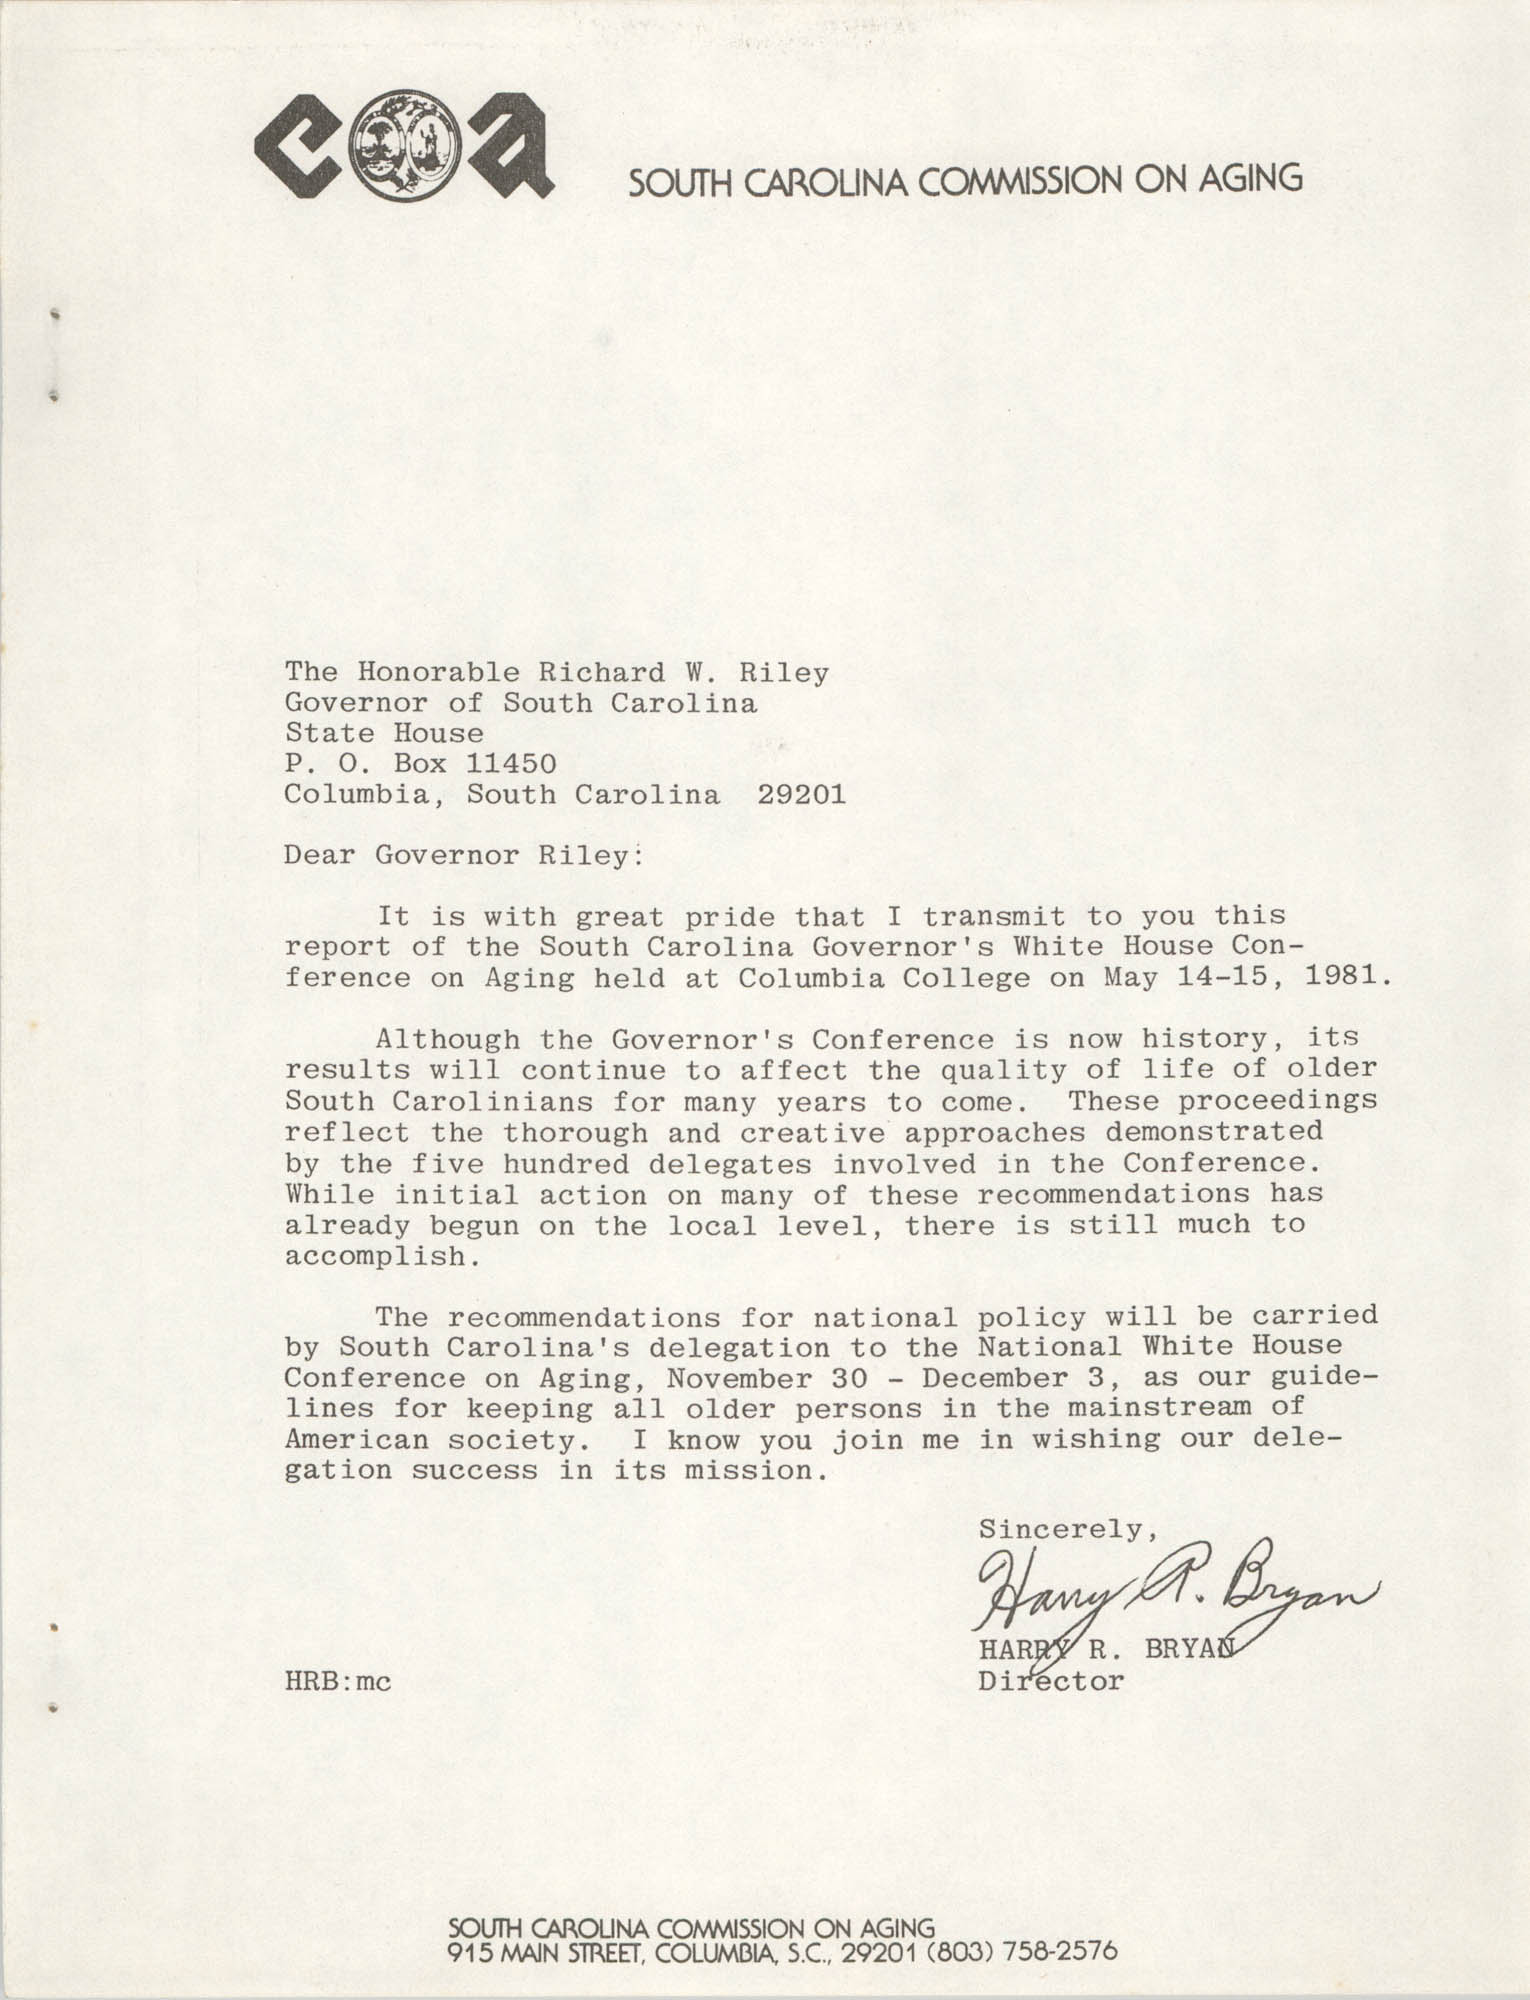 South Carolina Governor's White House Conference on Aging Proceedings, 1981, Cover Letter